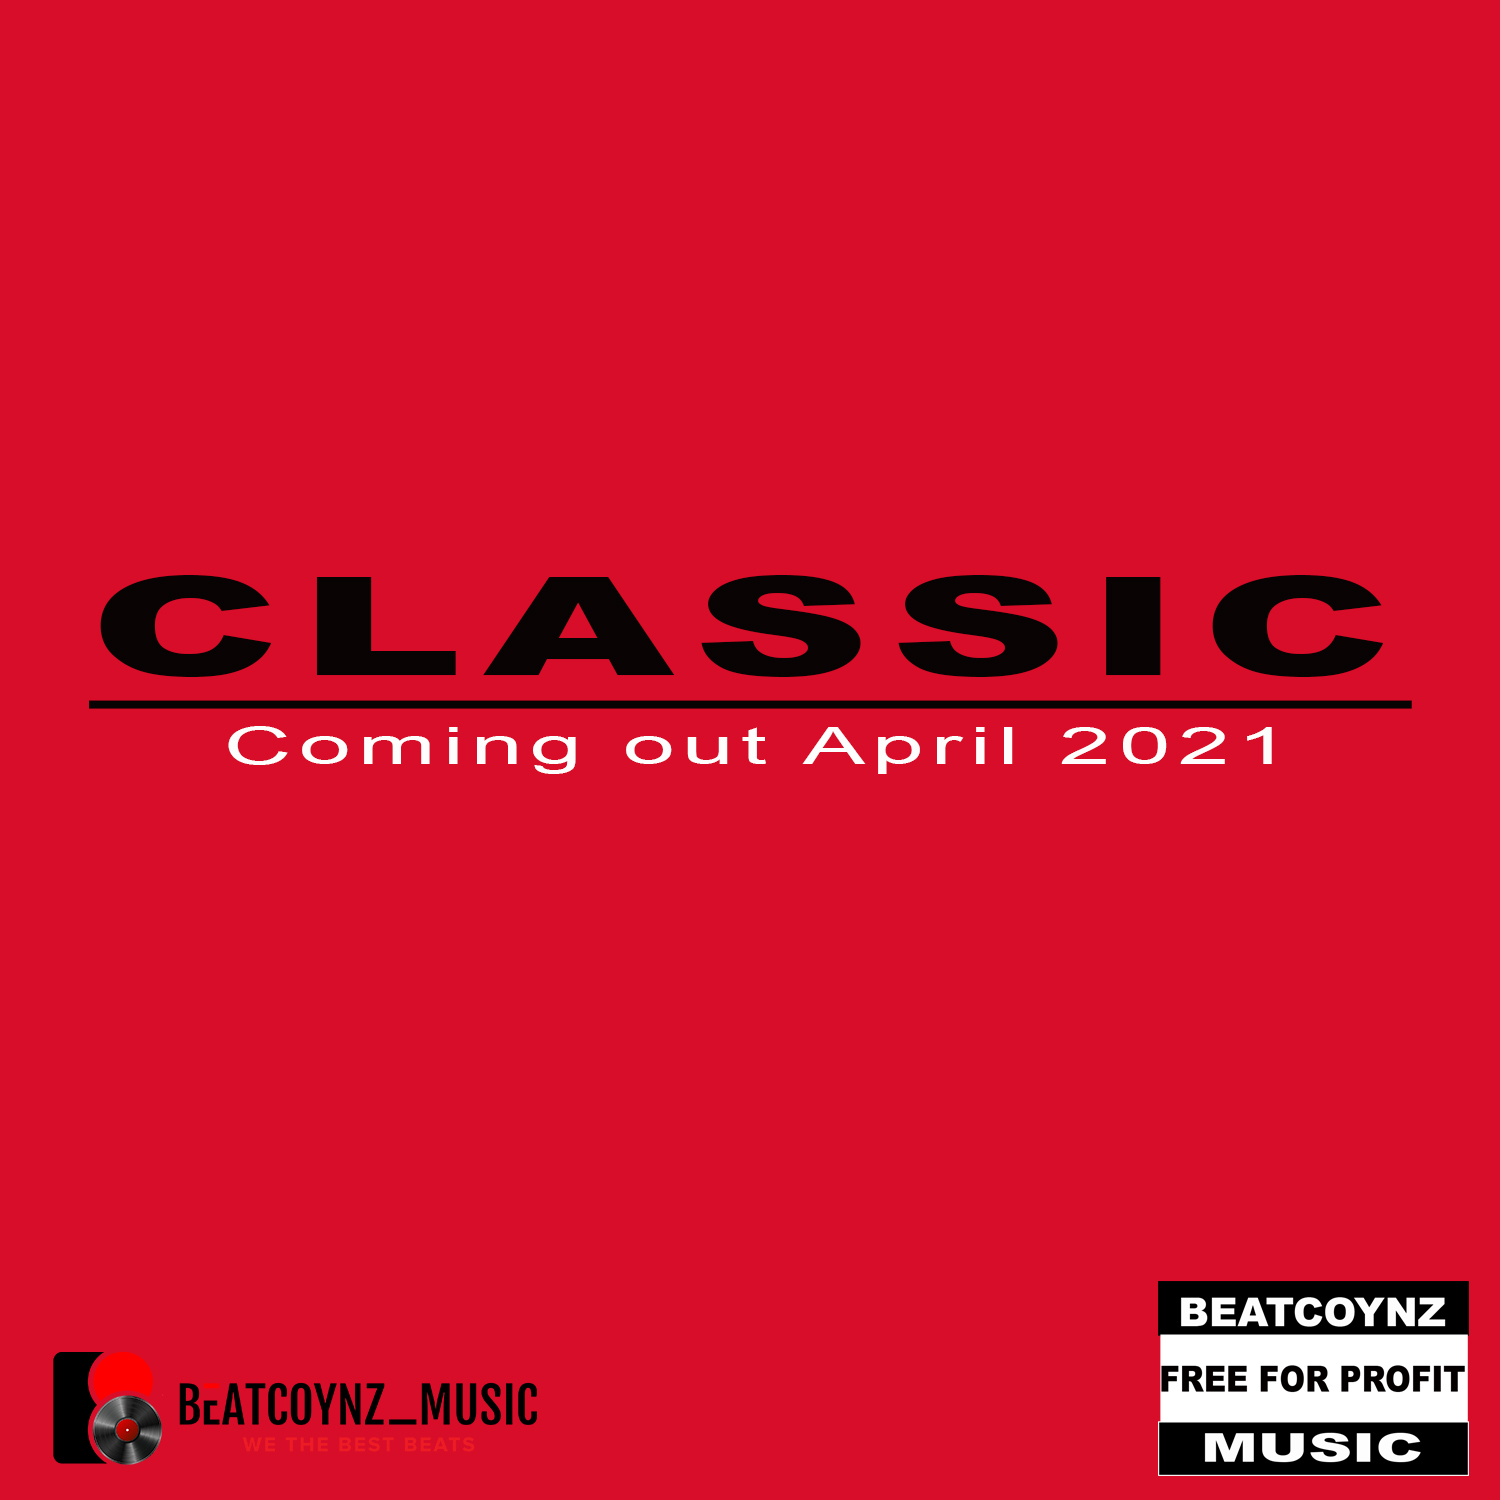 Classic_April21_Pre_Cover